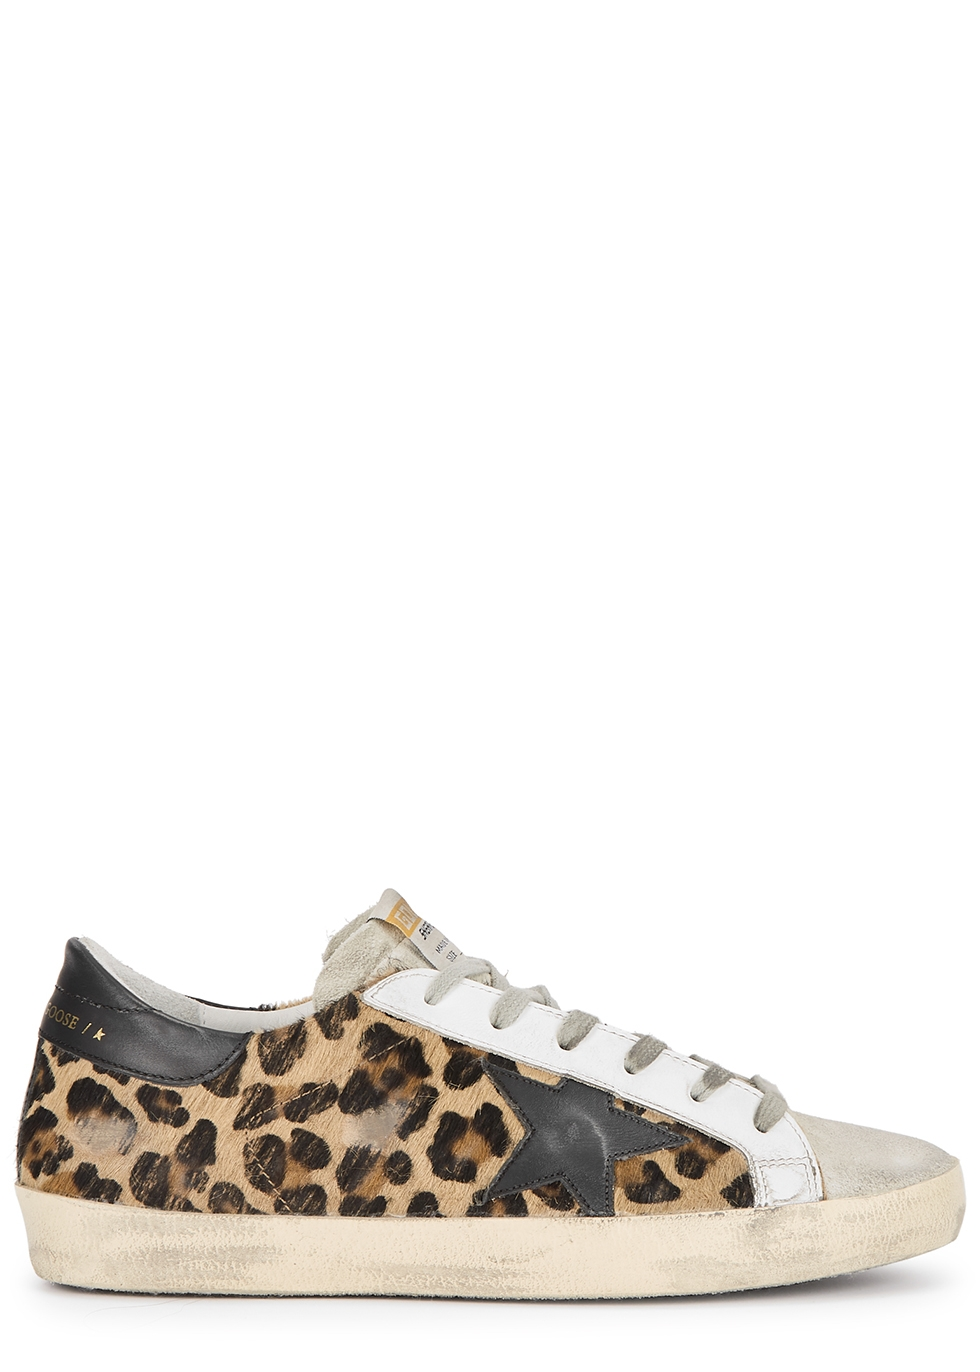 Superstar leopard-print calf hair sneakers